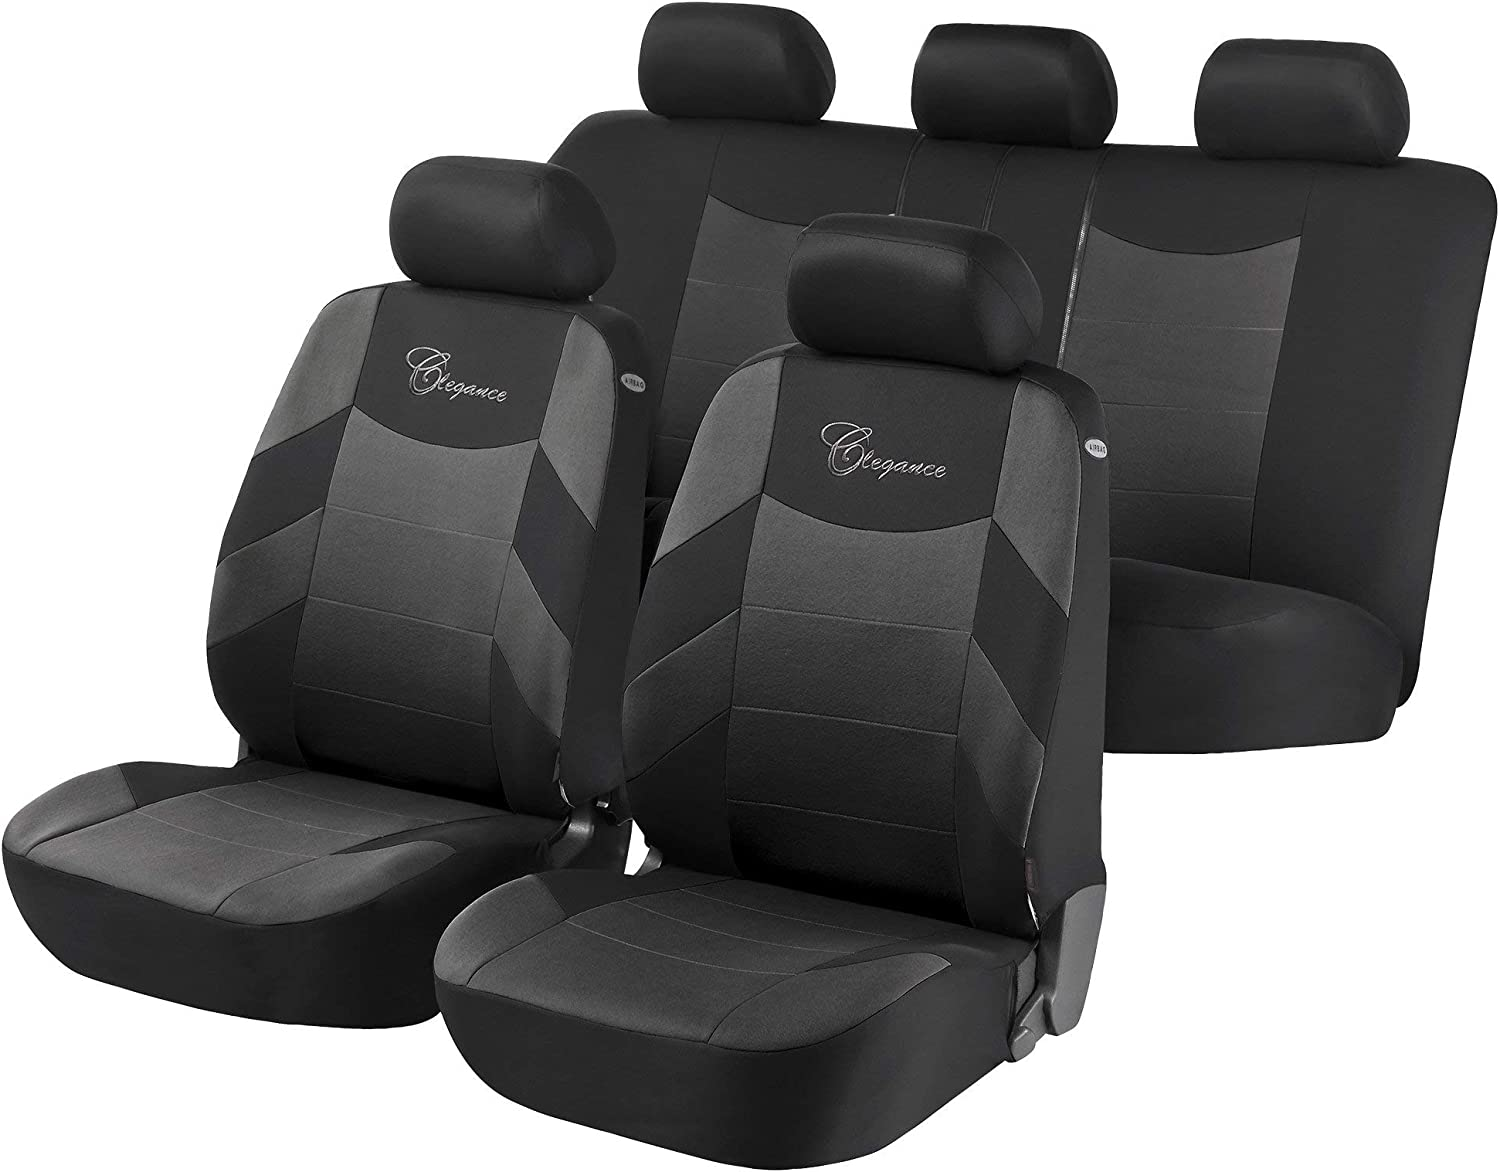 to fit Land Rover Range Rover Evoque 2011 Onwards Black Titan Waterproof Car Back Seat Cover